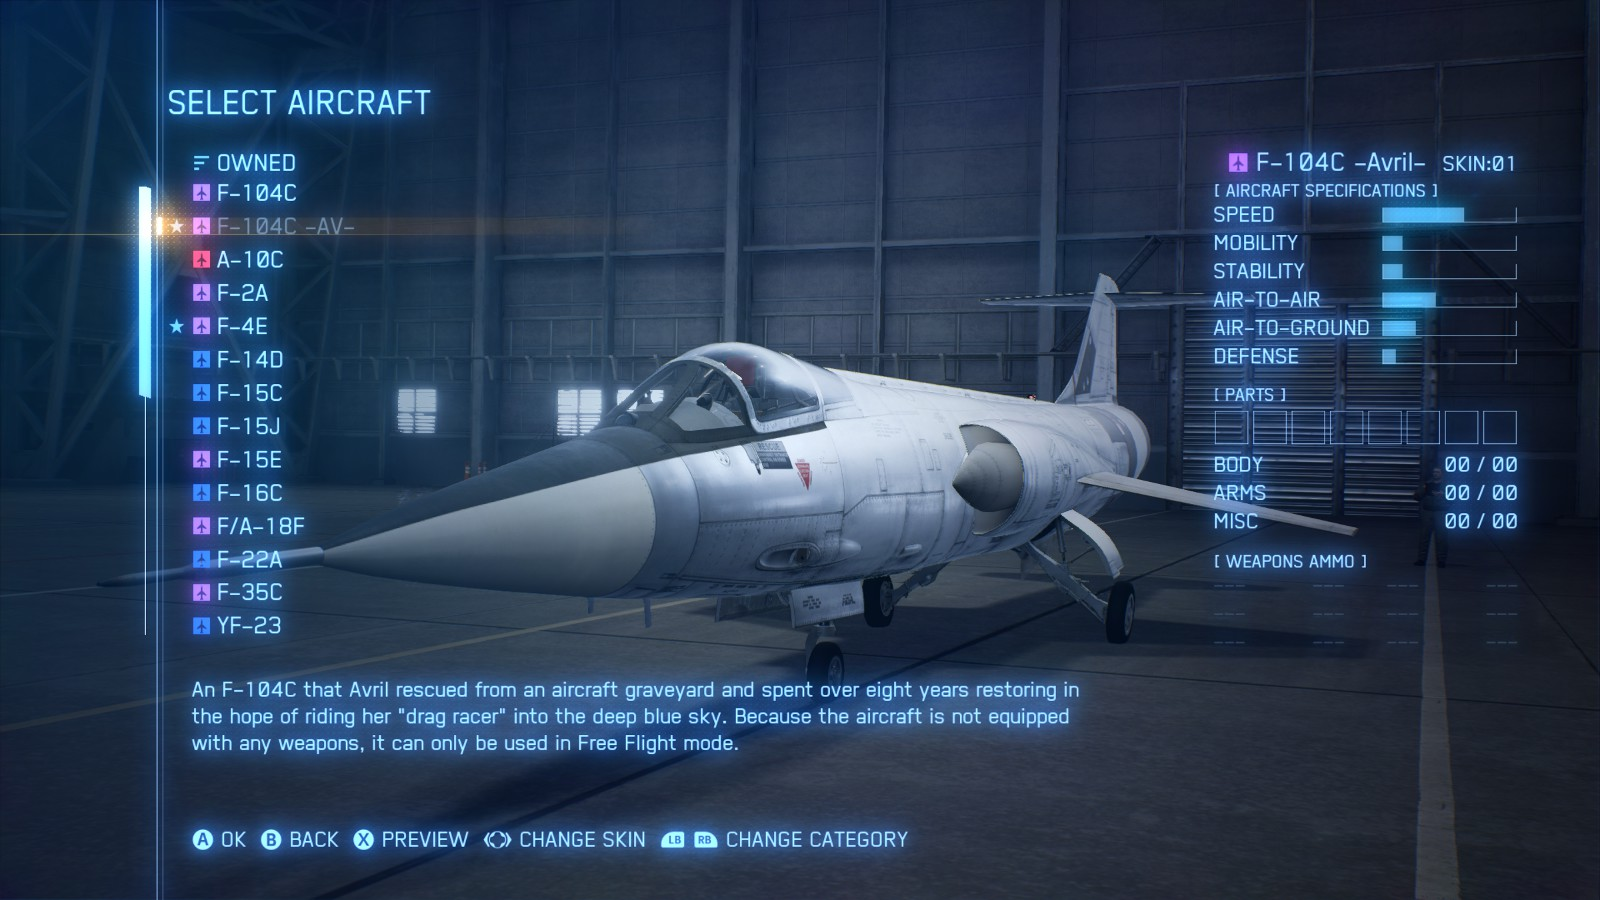 Steam Community Guide All Aircraft Skins Unlocks Detailed